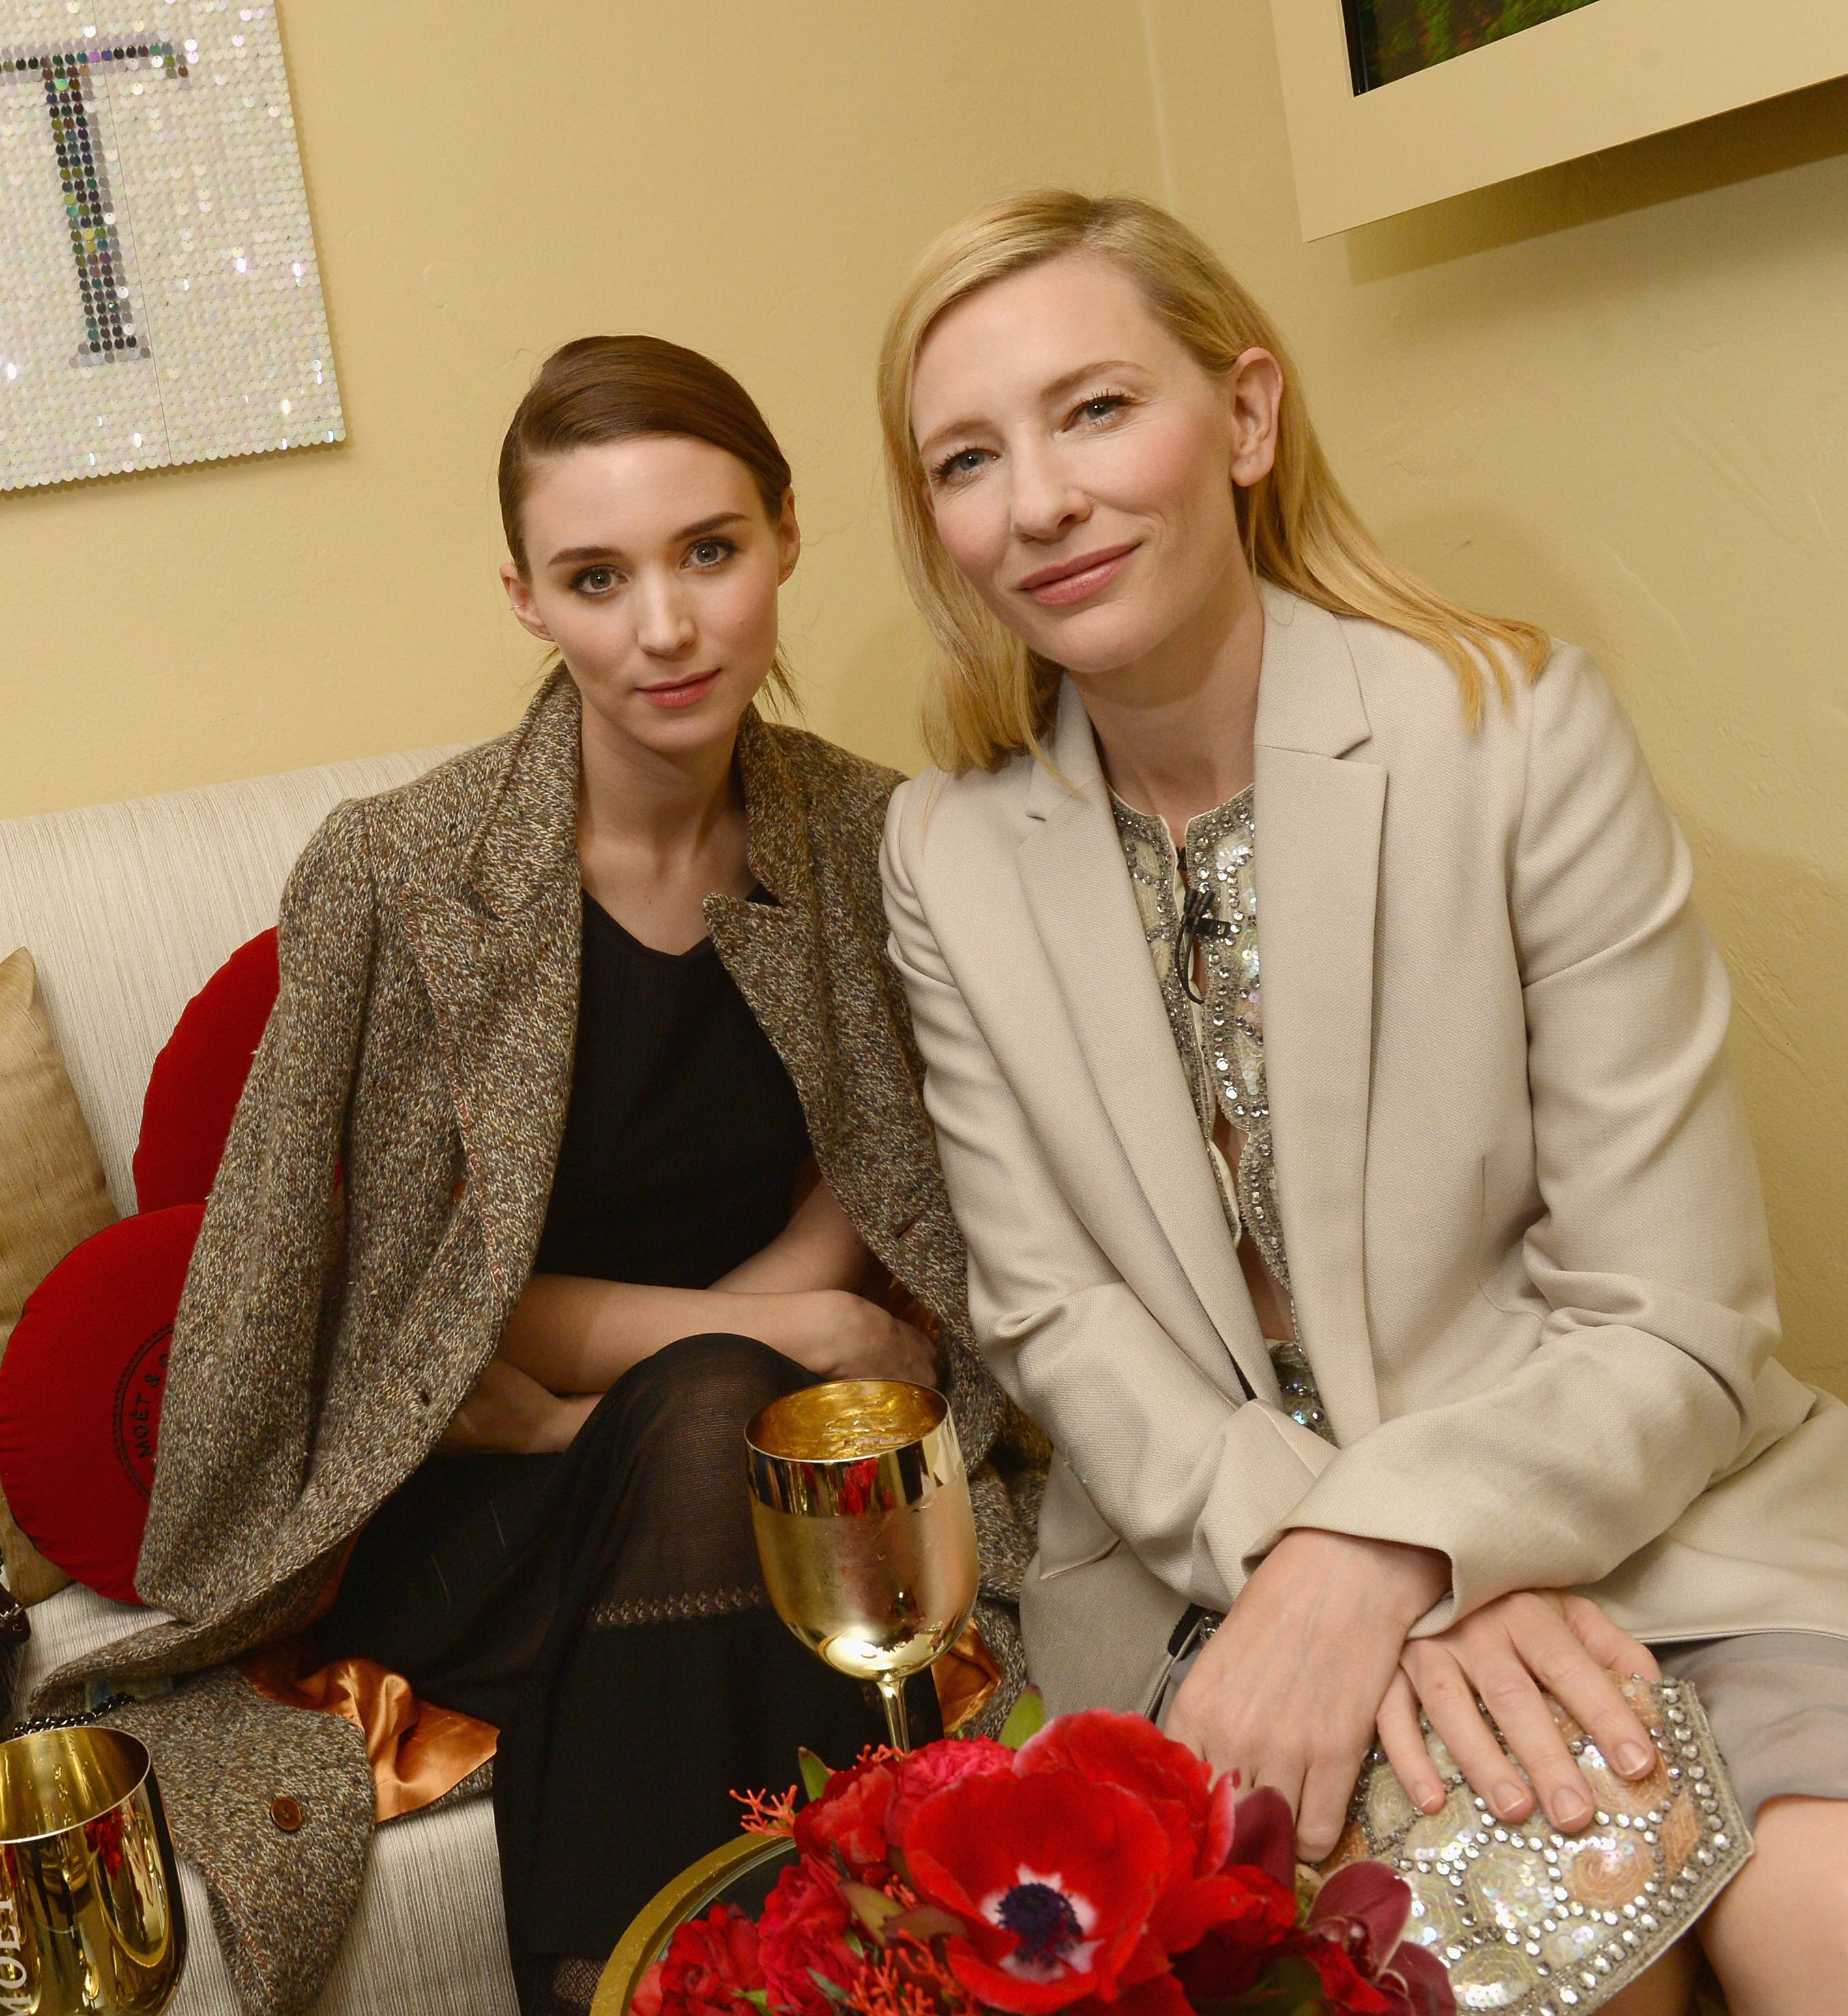 The Moet & Chandon Lounge at The 2014 Santa Barbara International Film Festival –  Honoring Cate Blanchett